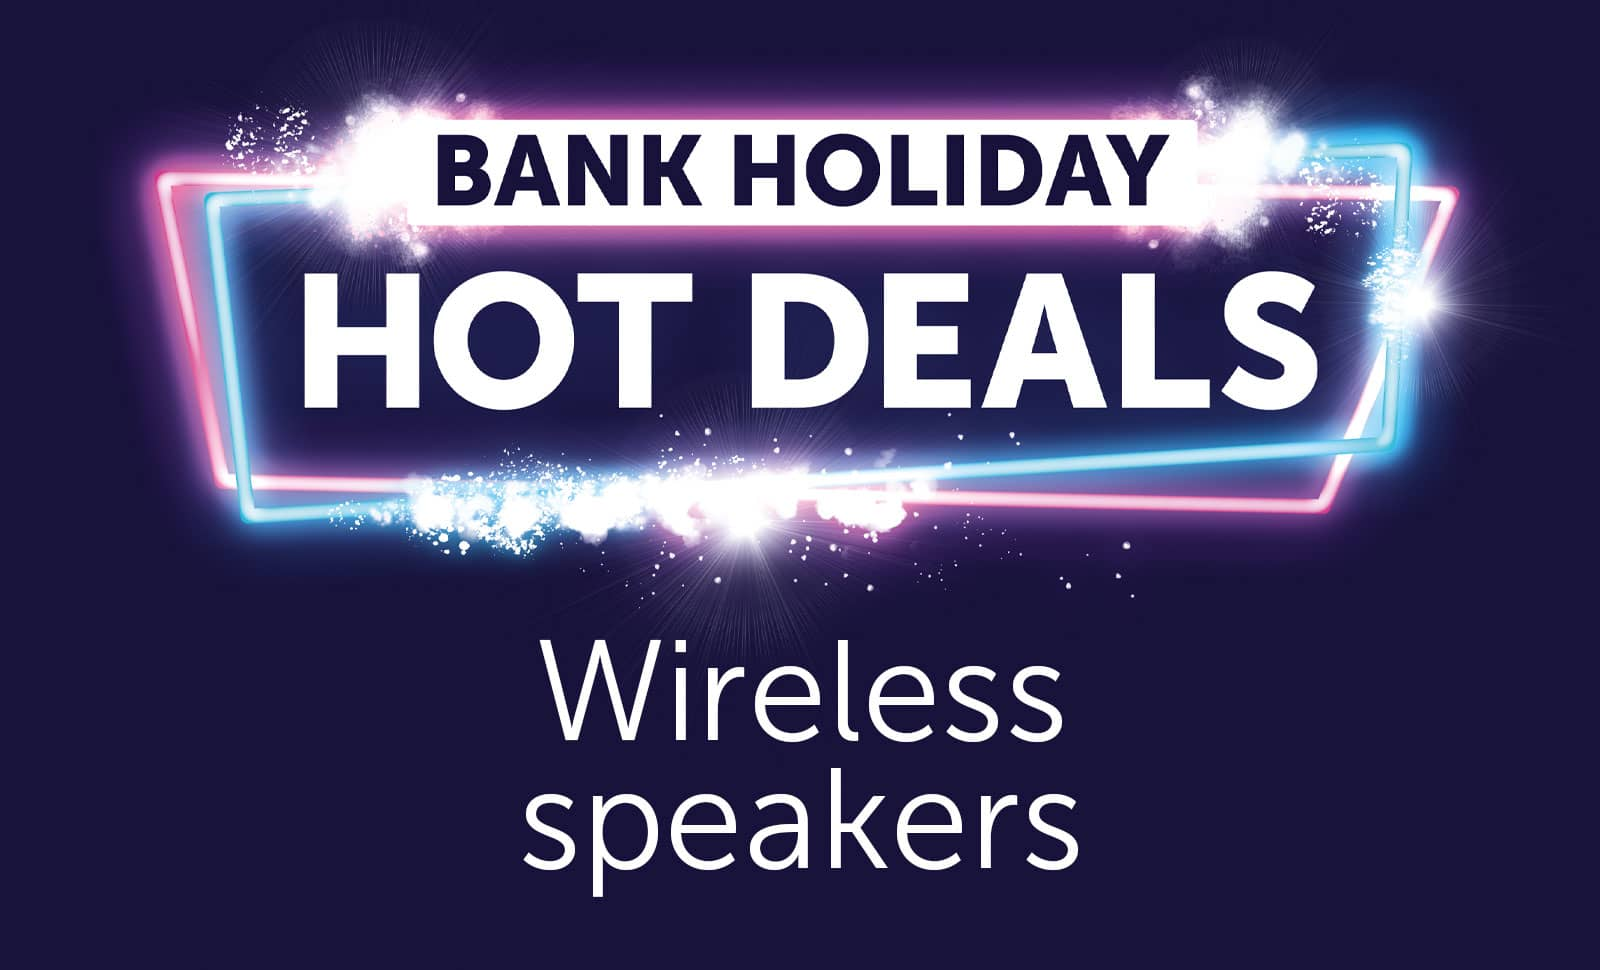 Bank Holiday - Wireless speakers